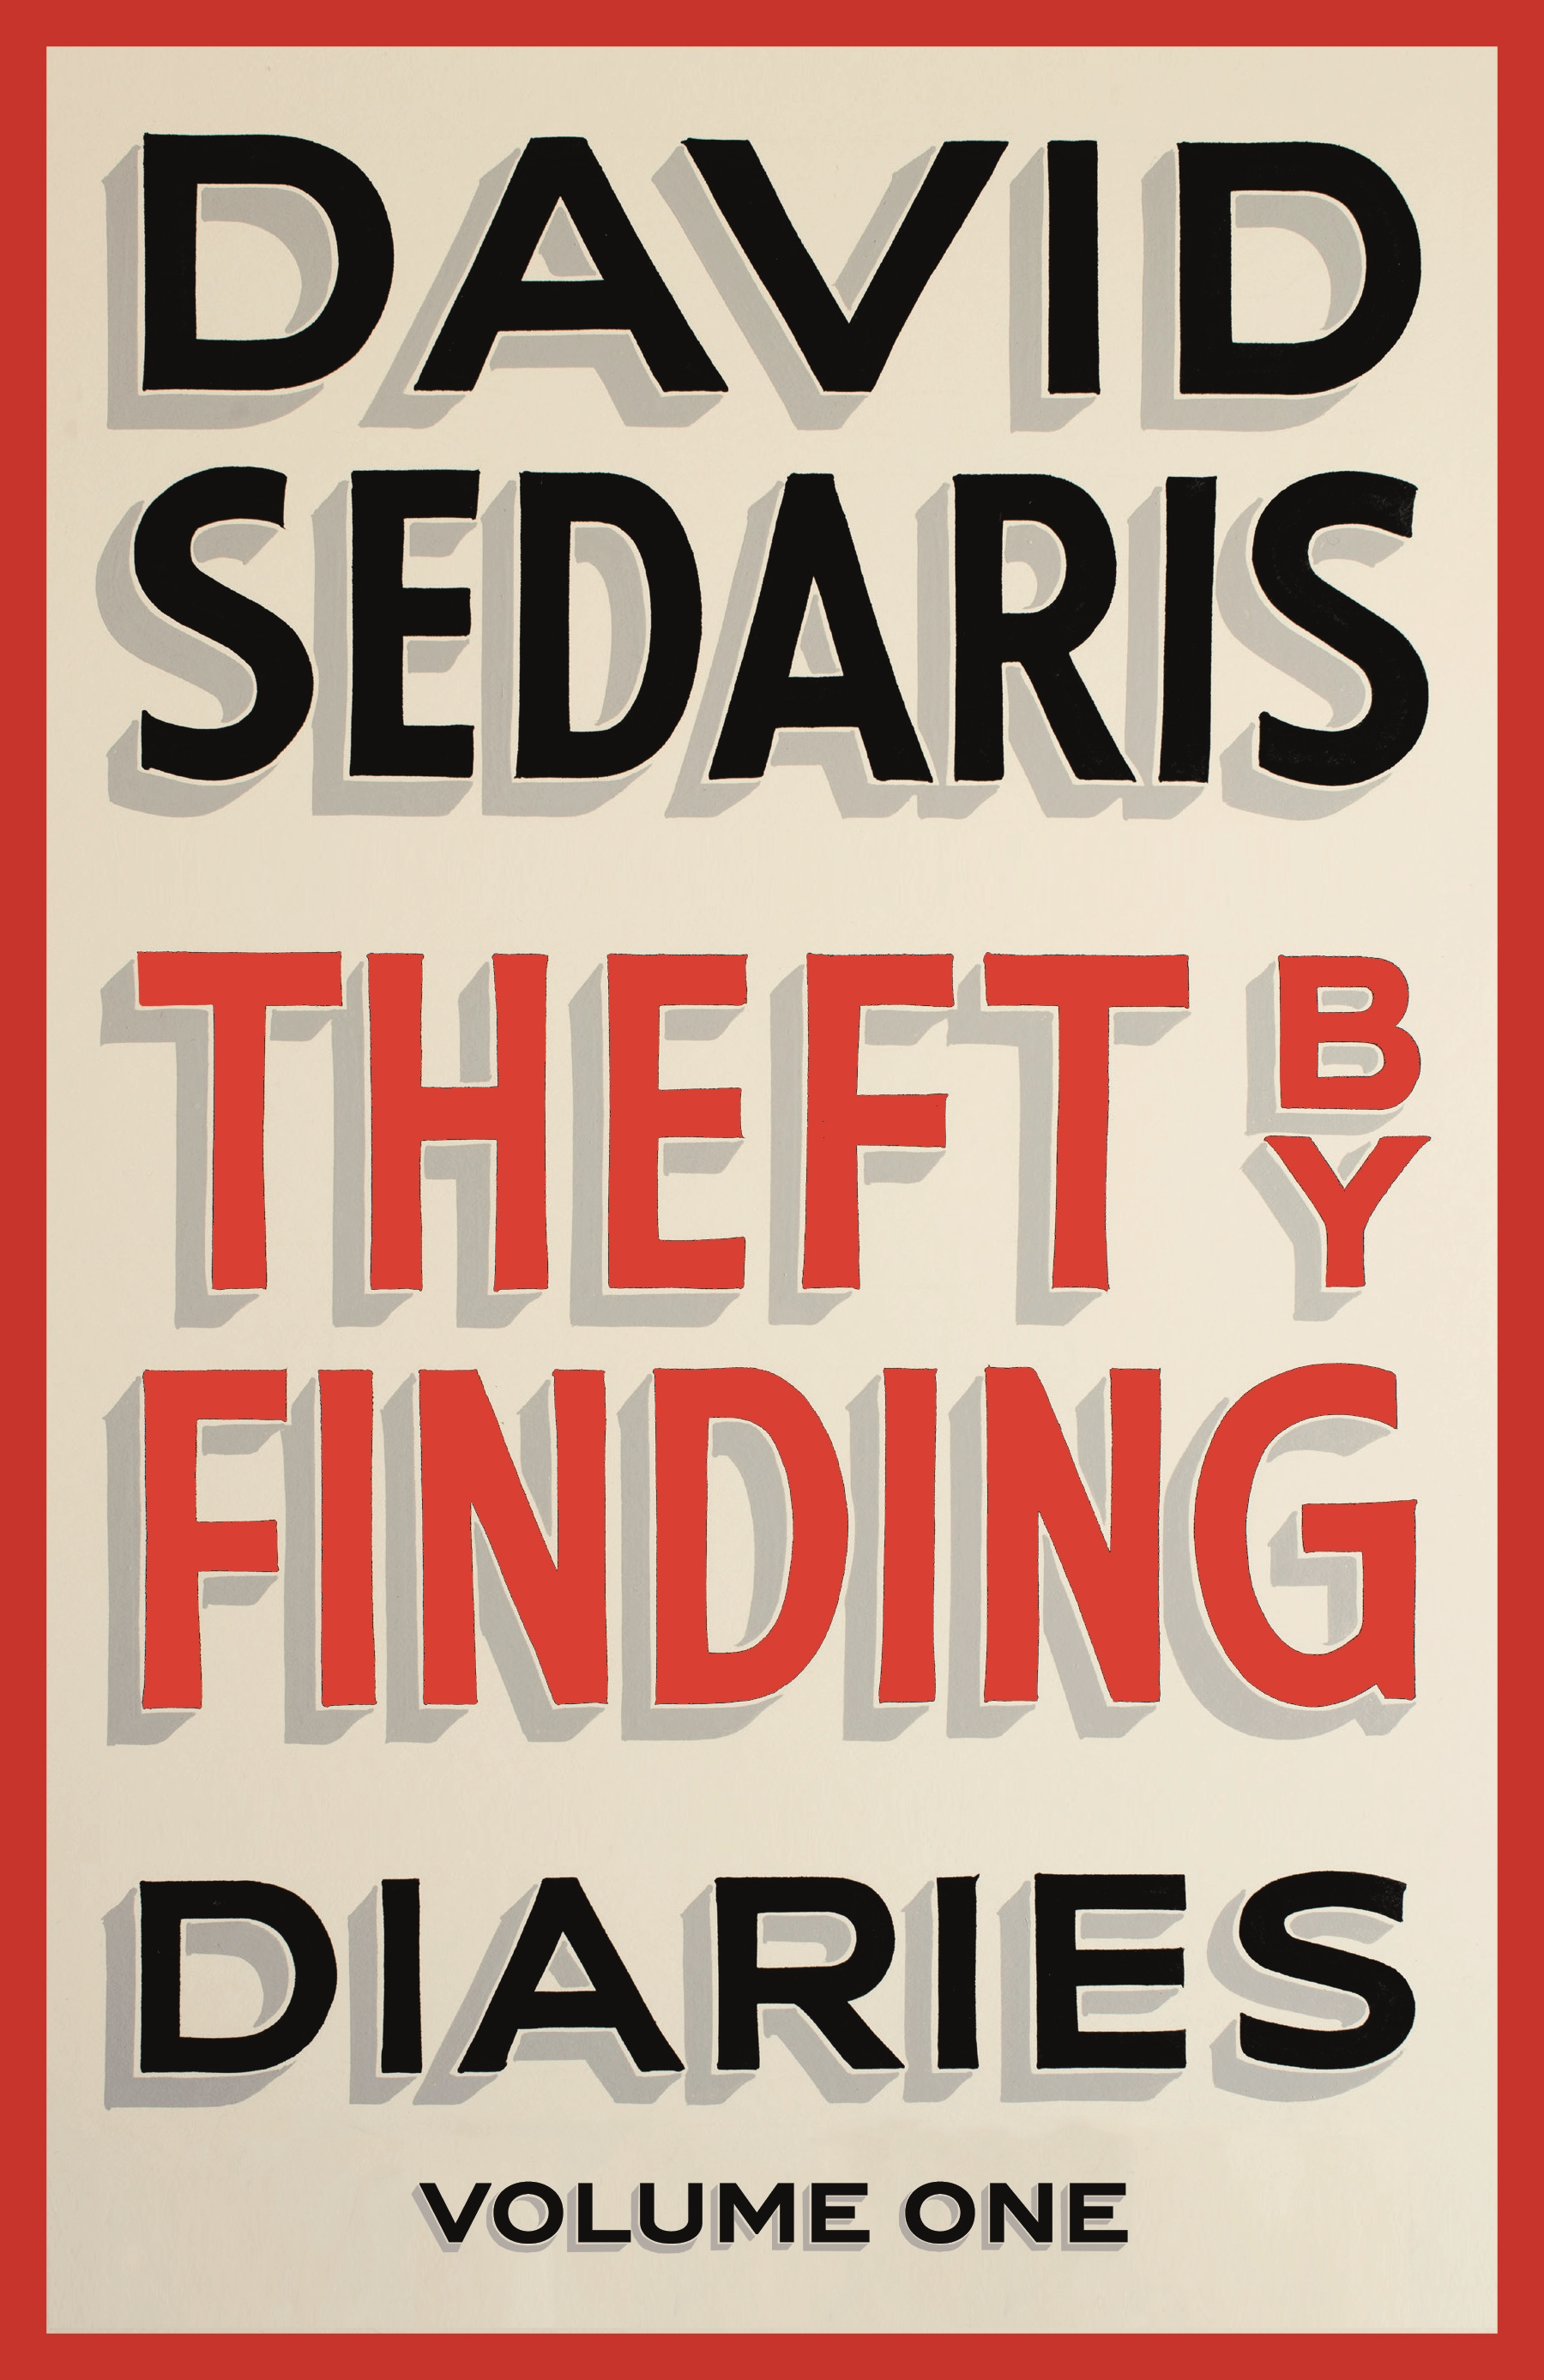 david sedaris first book essays David henry hwang marlon james miranda beloved for his personal essays and short stories, david sedaris is the author of a forthcoming book of essays.